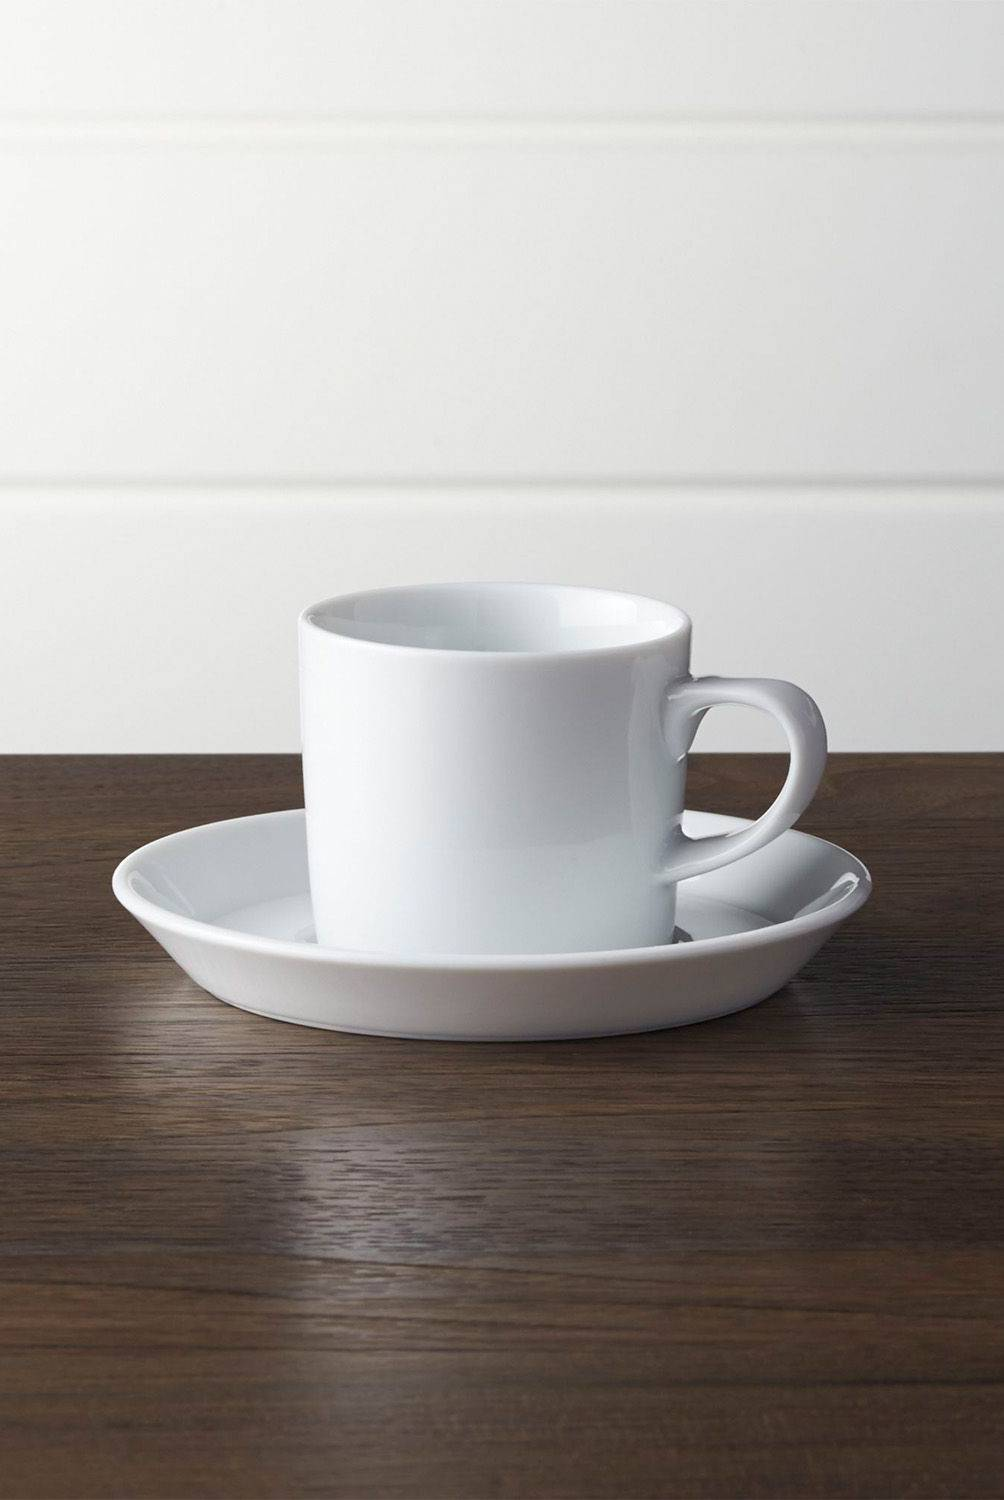 Crate & Barrel - Mug con Plato Base Verge 6 cm